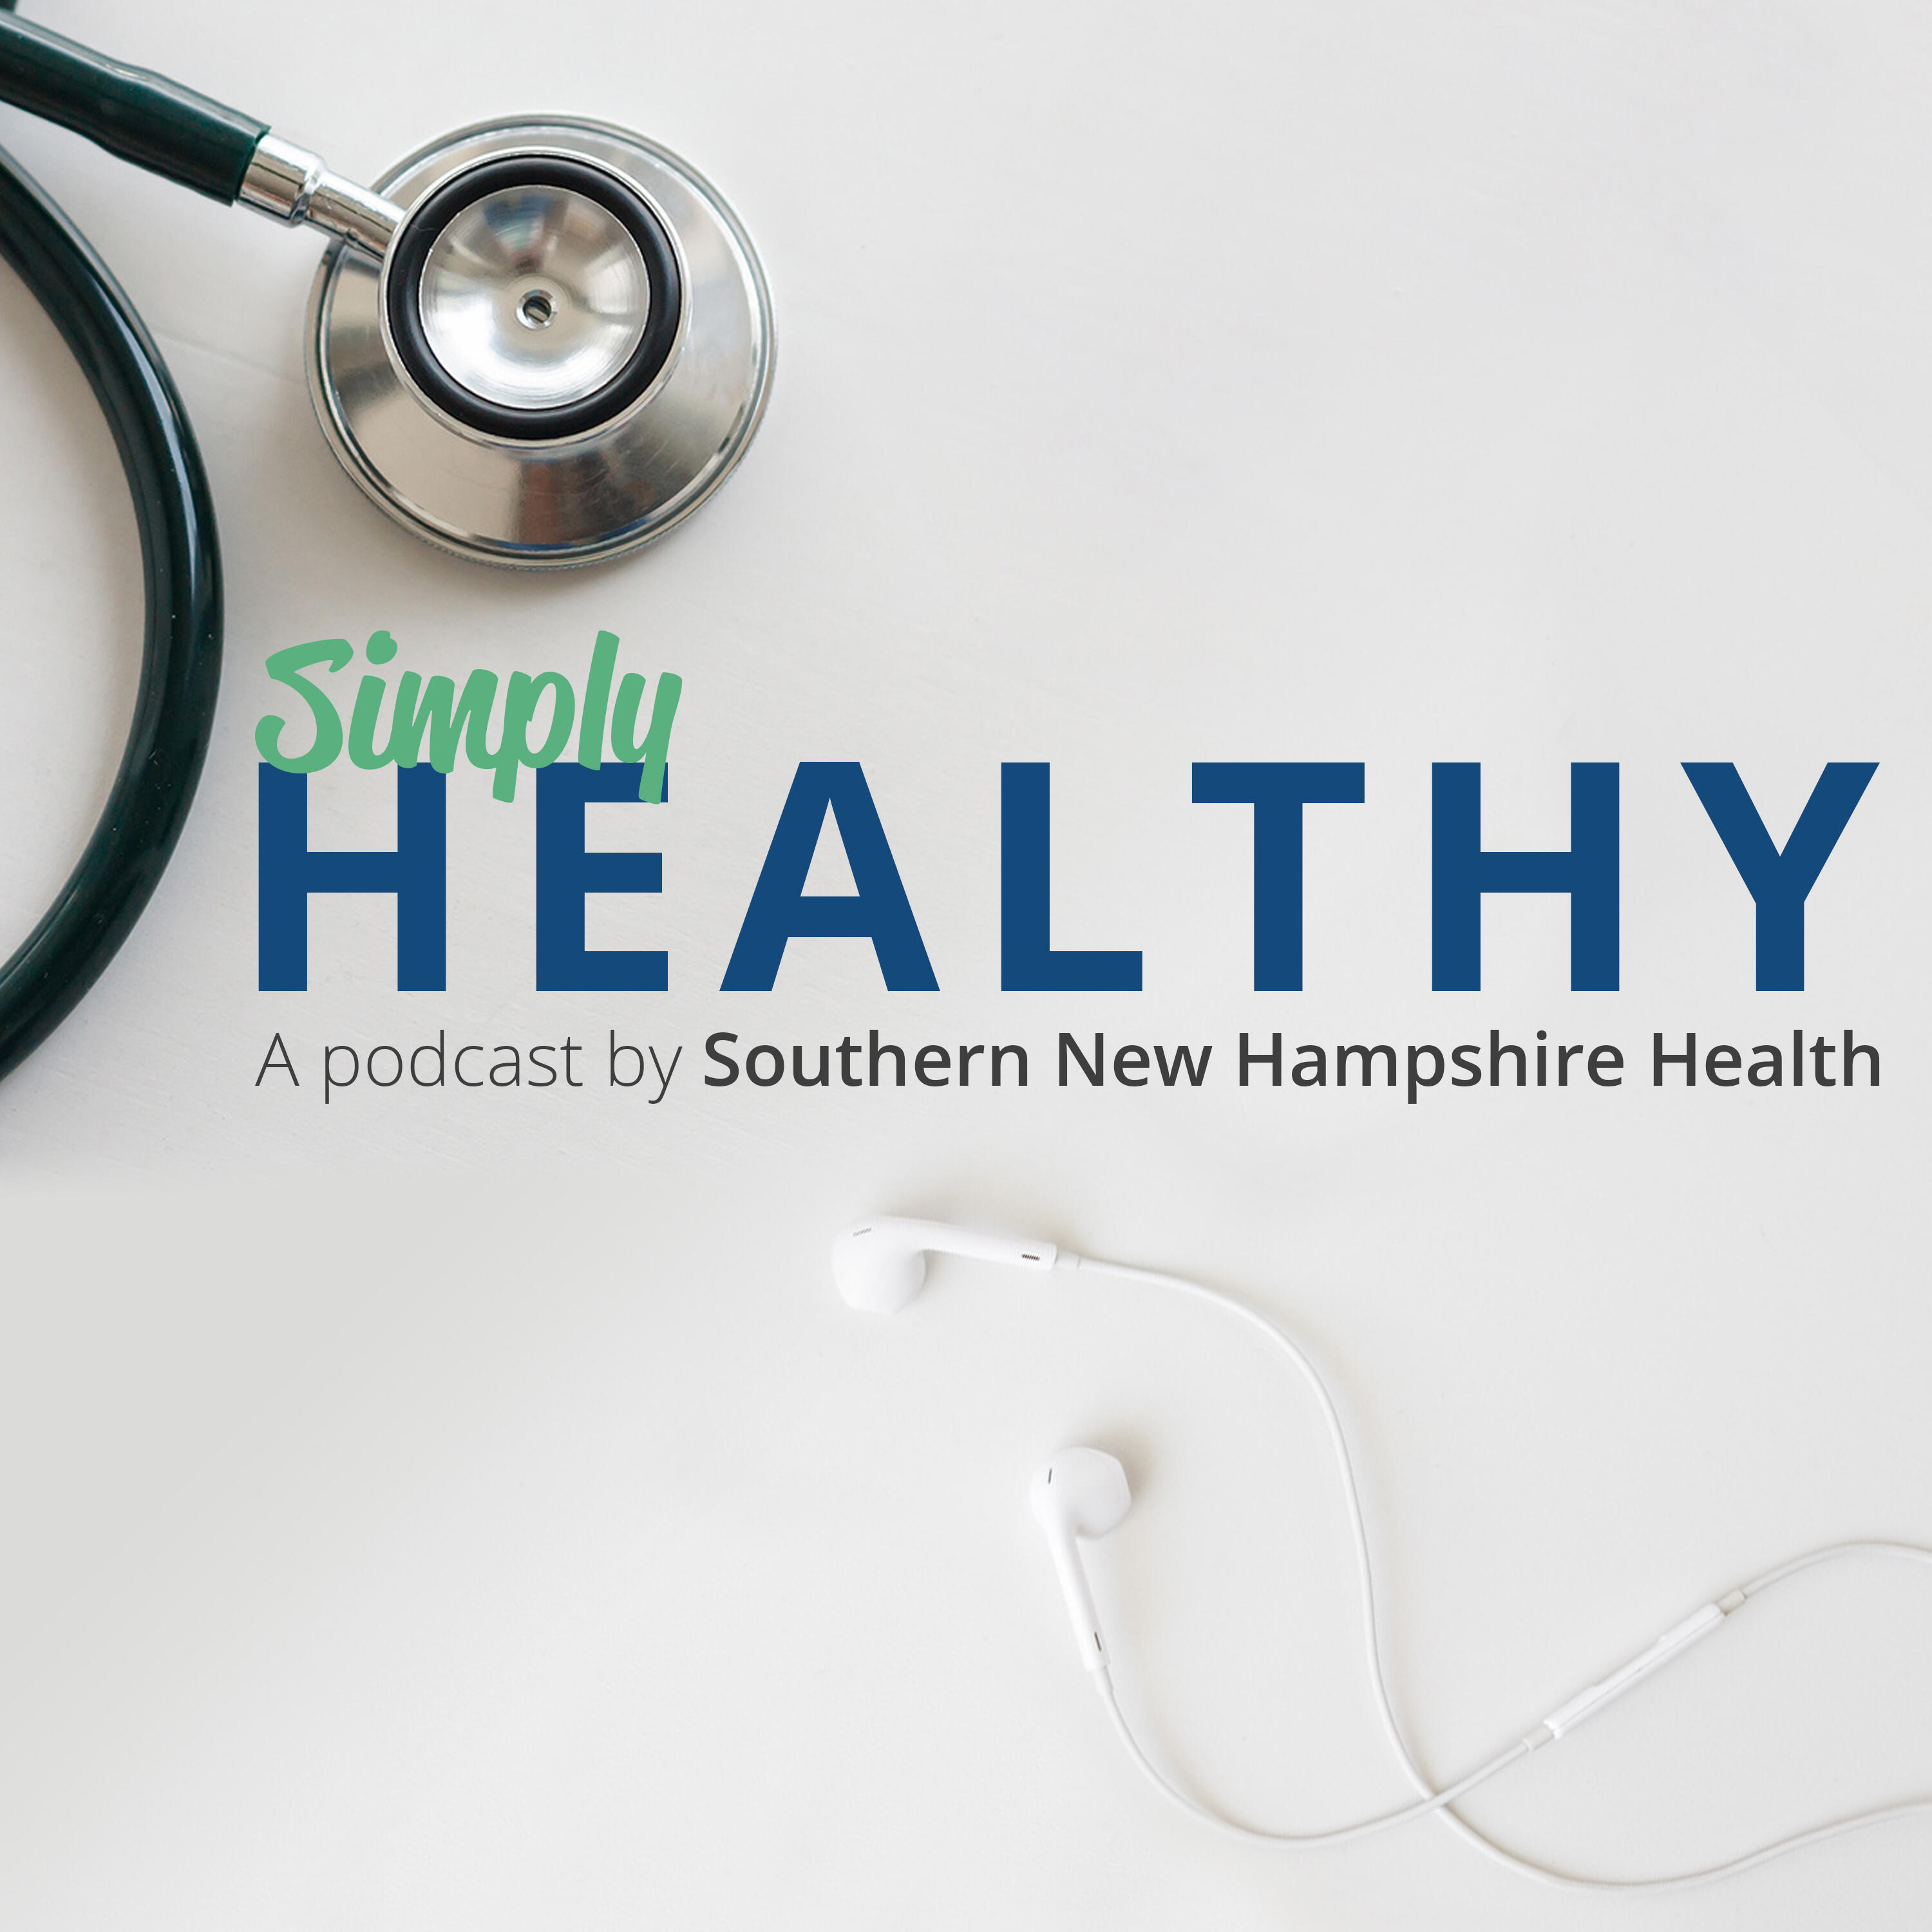 Simply Healthy: A Podcast by Southern New Hampshire Health